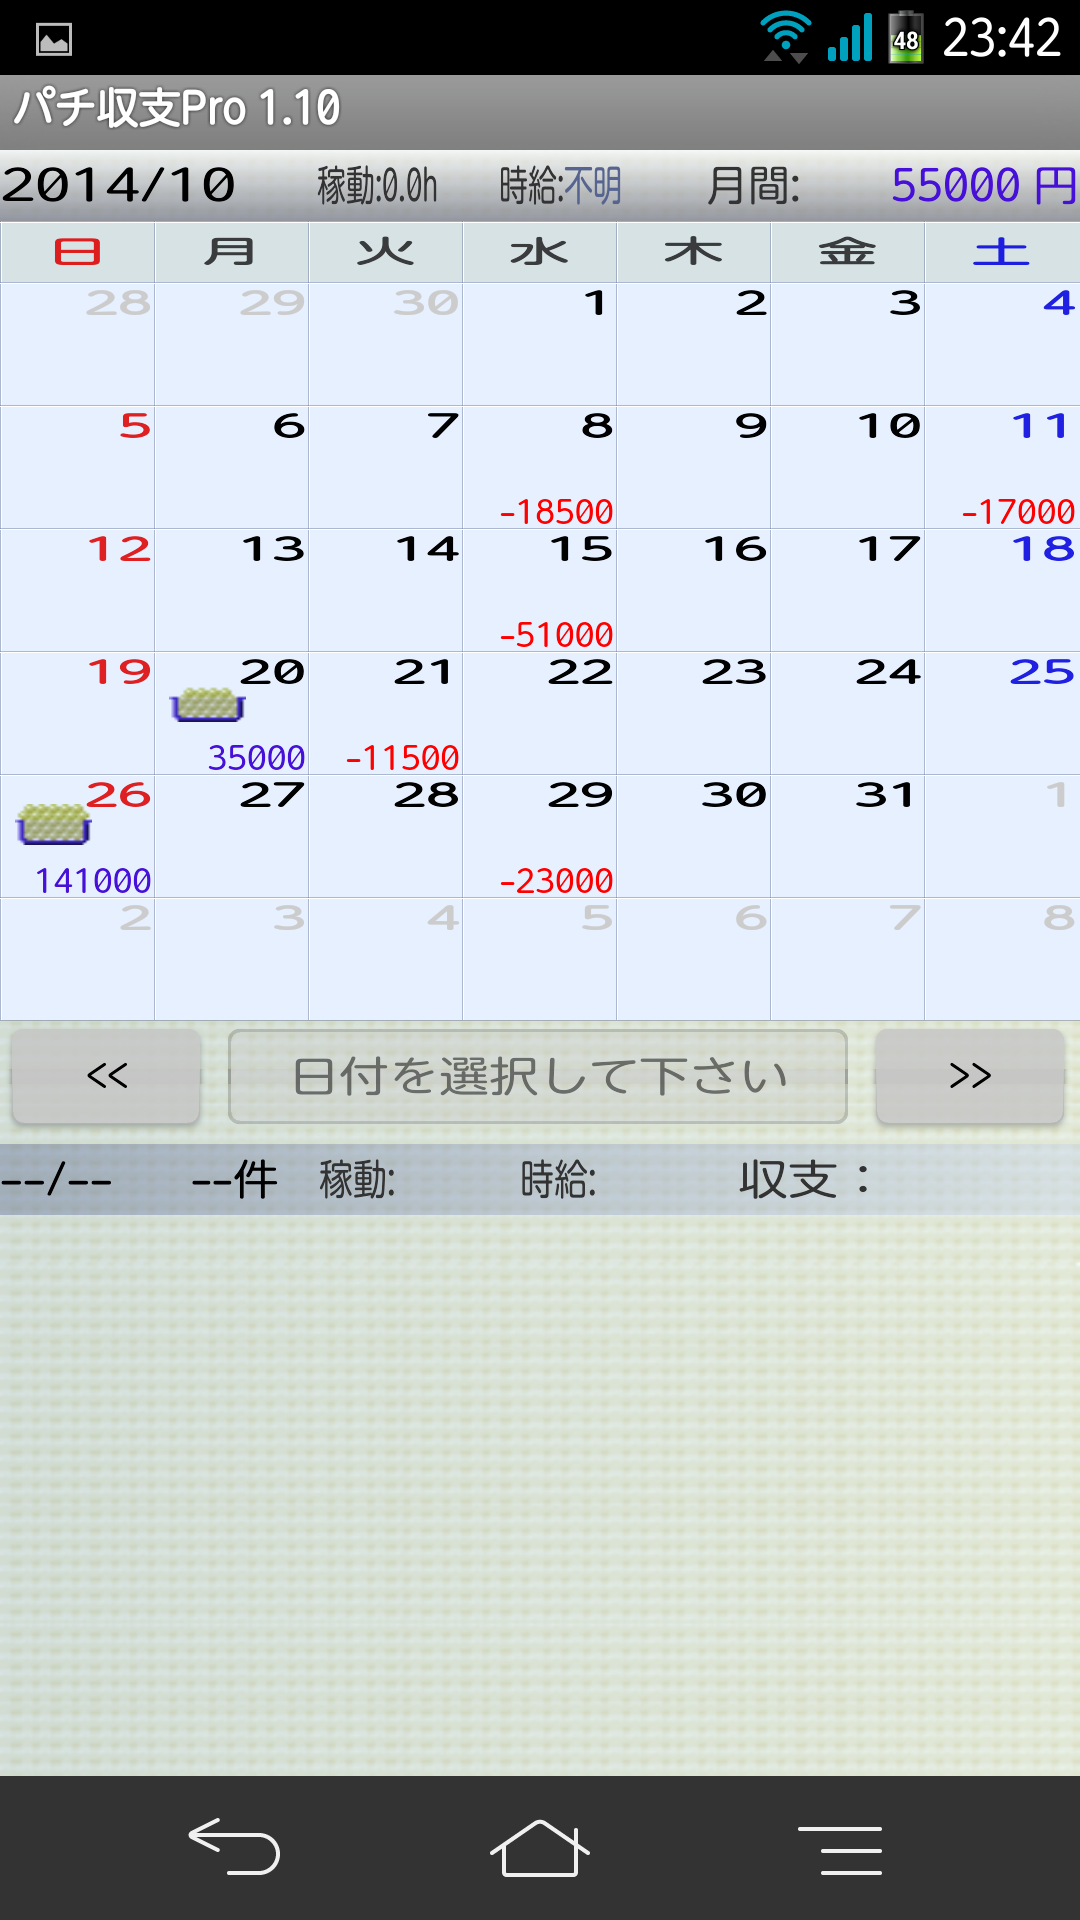 Screenshot_2014-11-01-23-42-48.png